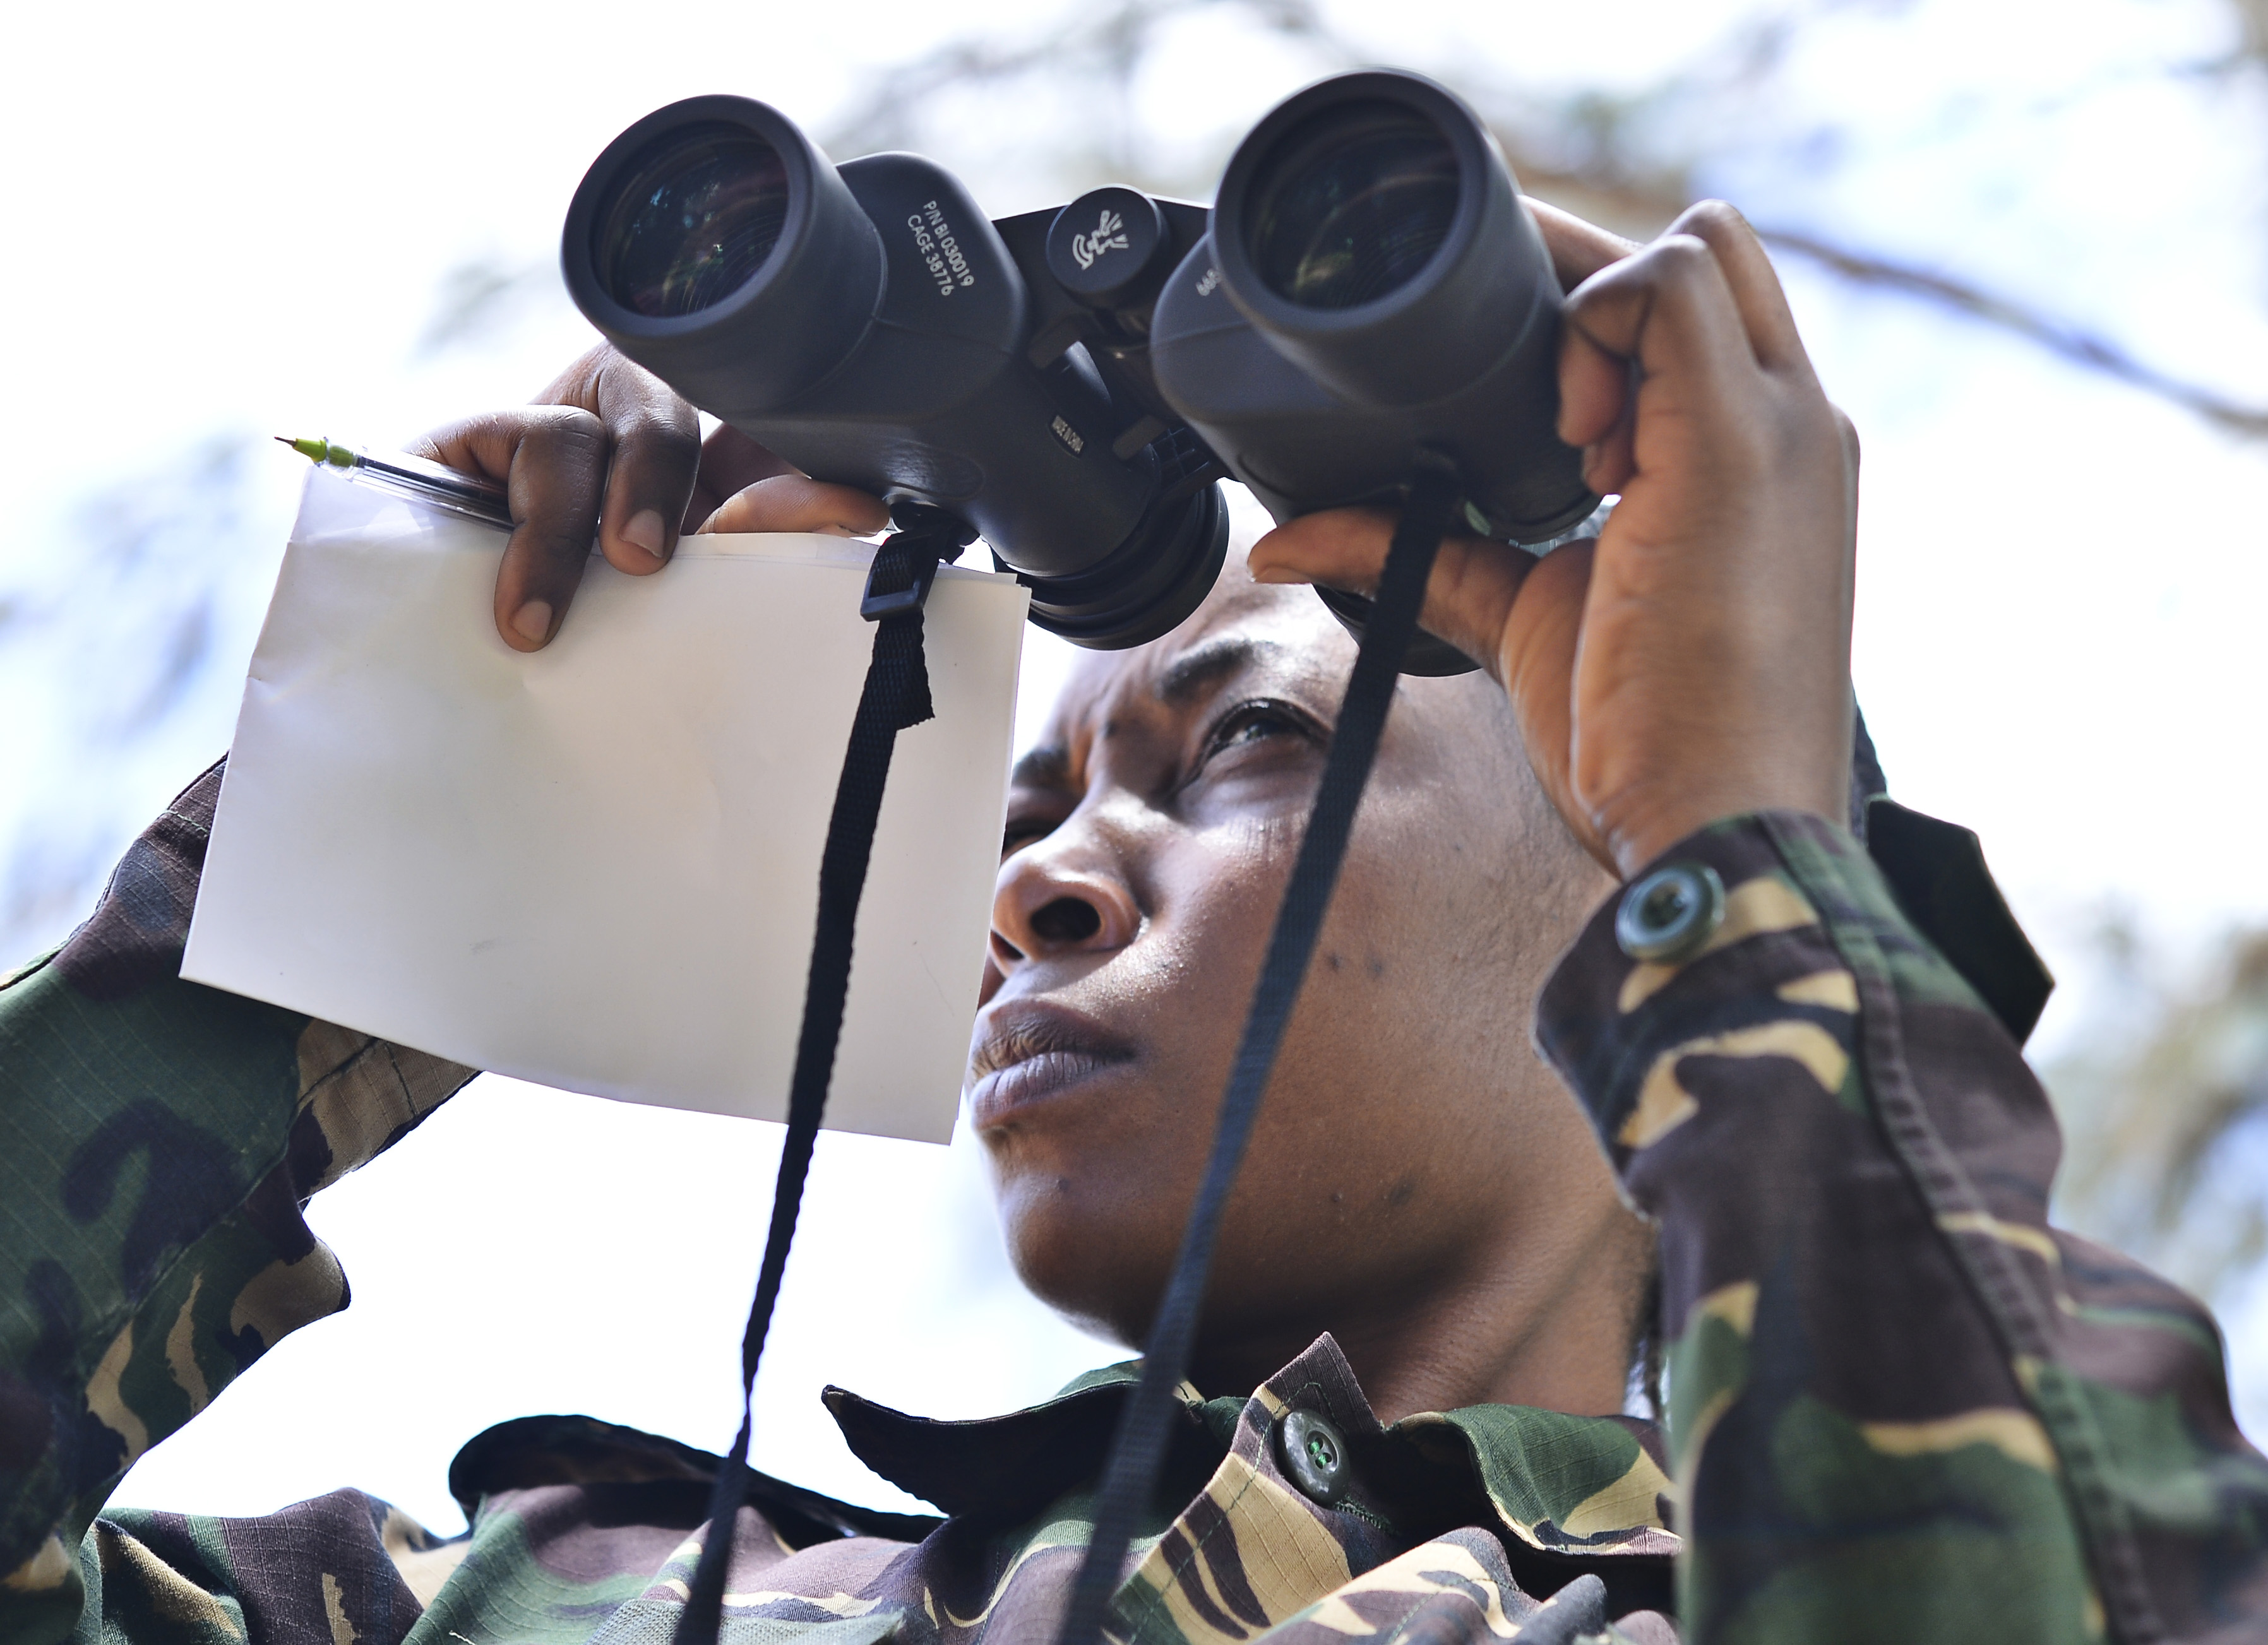 Pvt. Flora Flowin Mkinga, Tanzania People's Defense Force ammunition technician, looks through binoculars during a reconnaissance practical at the Peace Keeping Training Center in Dar es Salaam, Tanzania Aug. 23, 2015. U.S. Navy Explosive Ordnance Disposal technicians, assigned to Combined to Joint Task Force-Horn of Africa, instructed Humanitarian Mine Action course students on ordnance safety and identification and tactical combat casualty care procedures.(U.S. Air Force photo by Senior Airman Nesha Humes)